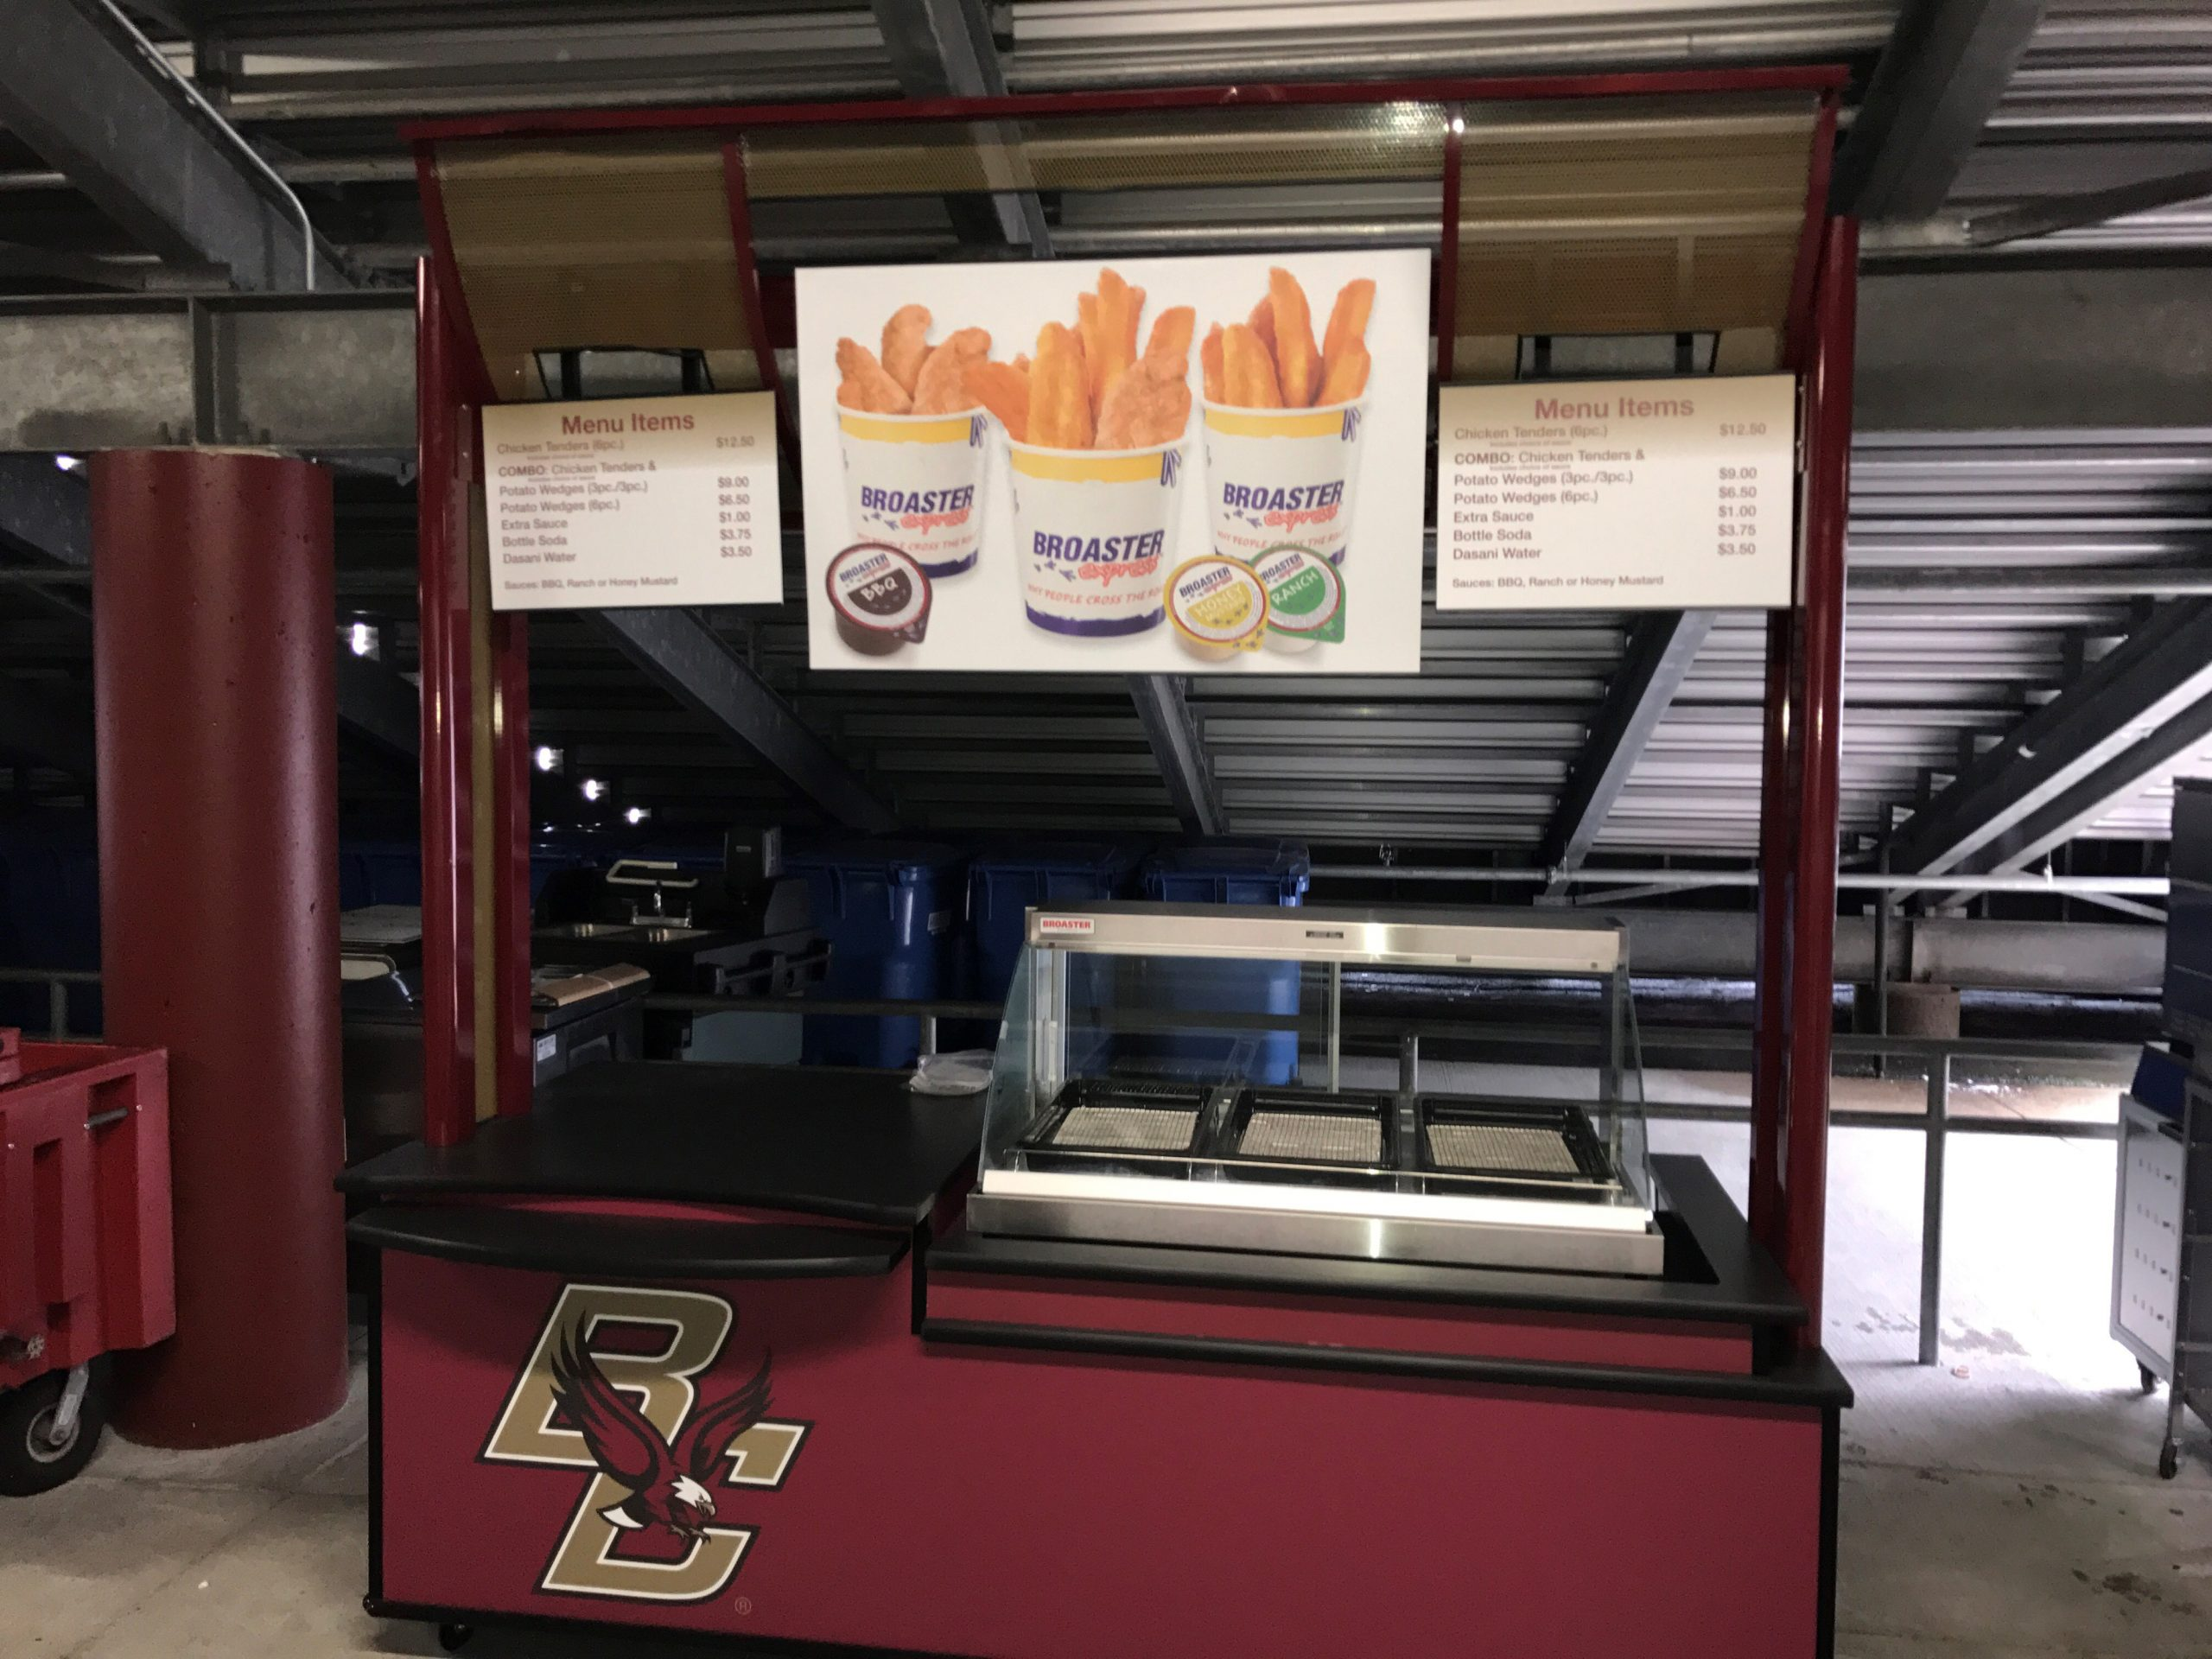 Boston College Food options from Broaster